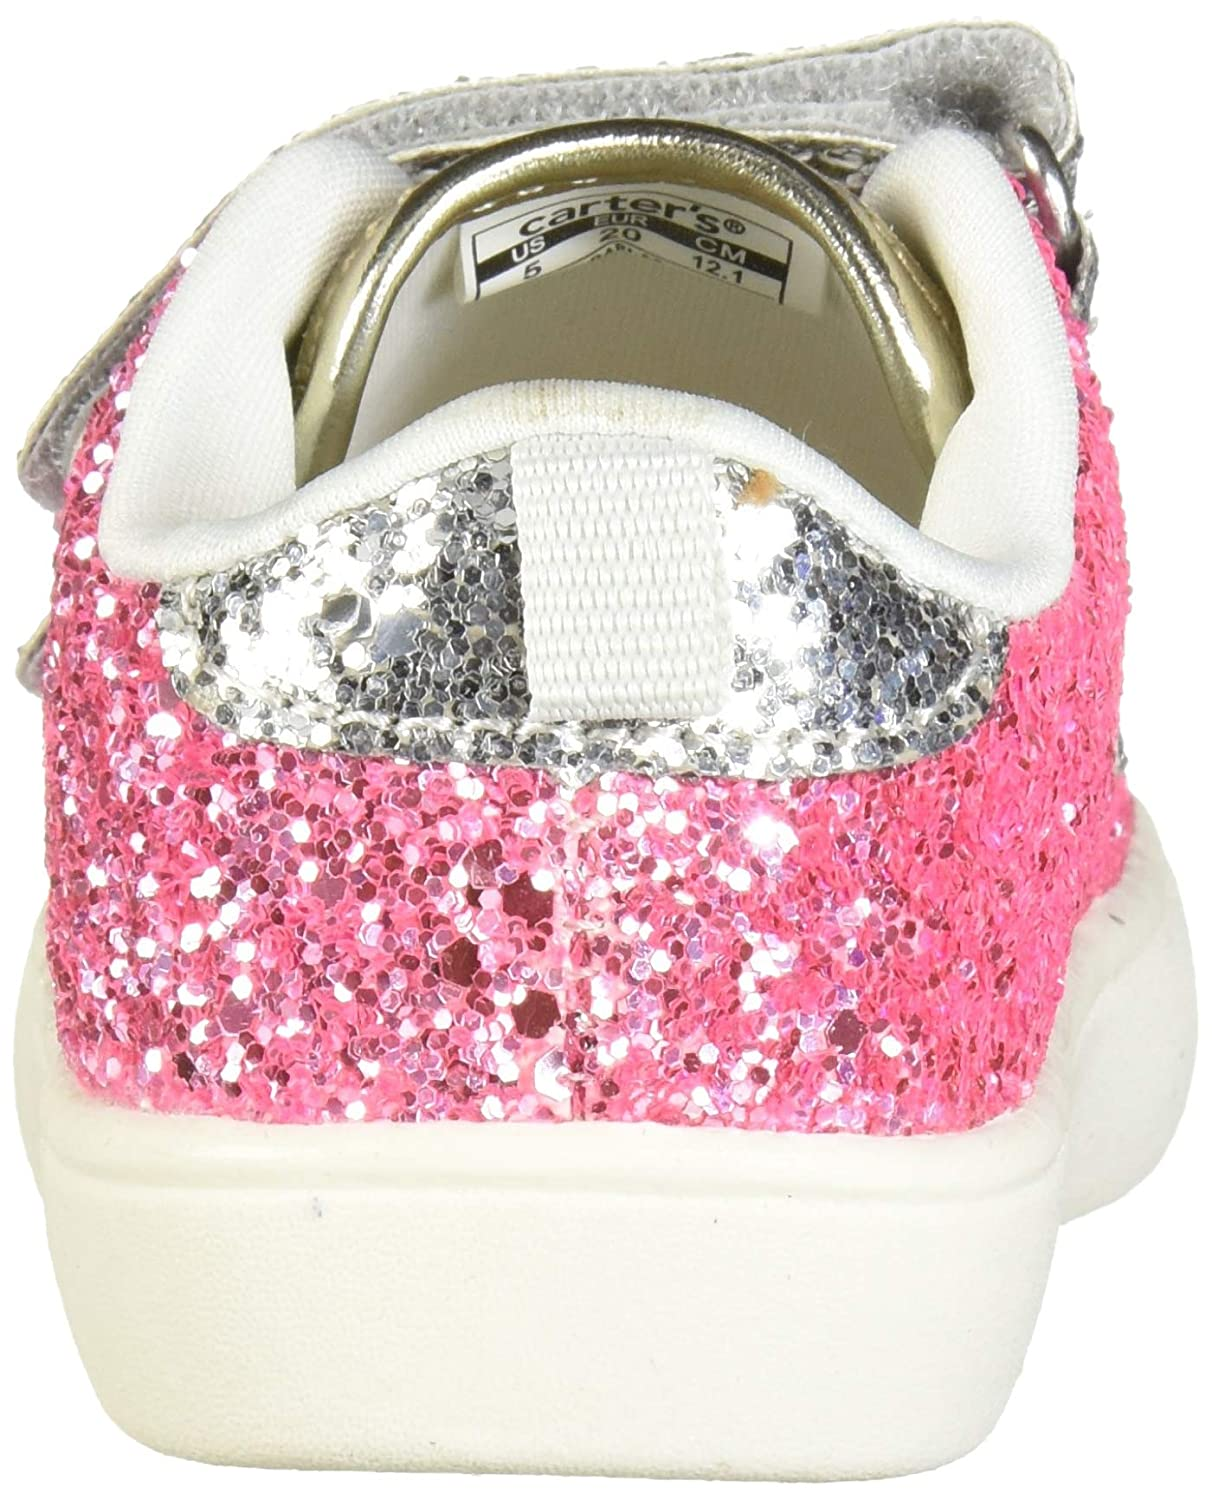 Amazon.com: Carters Kids Darla - Zapatillas para niña con ...